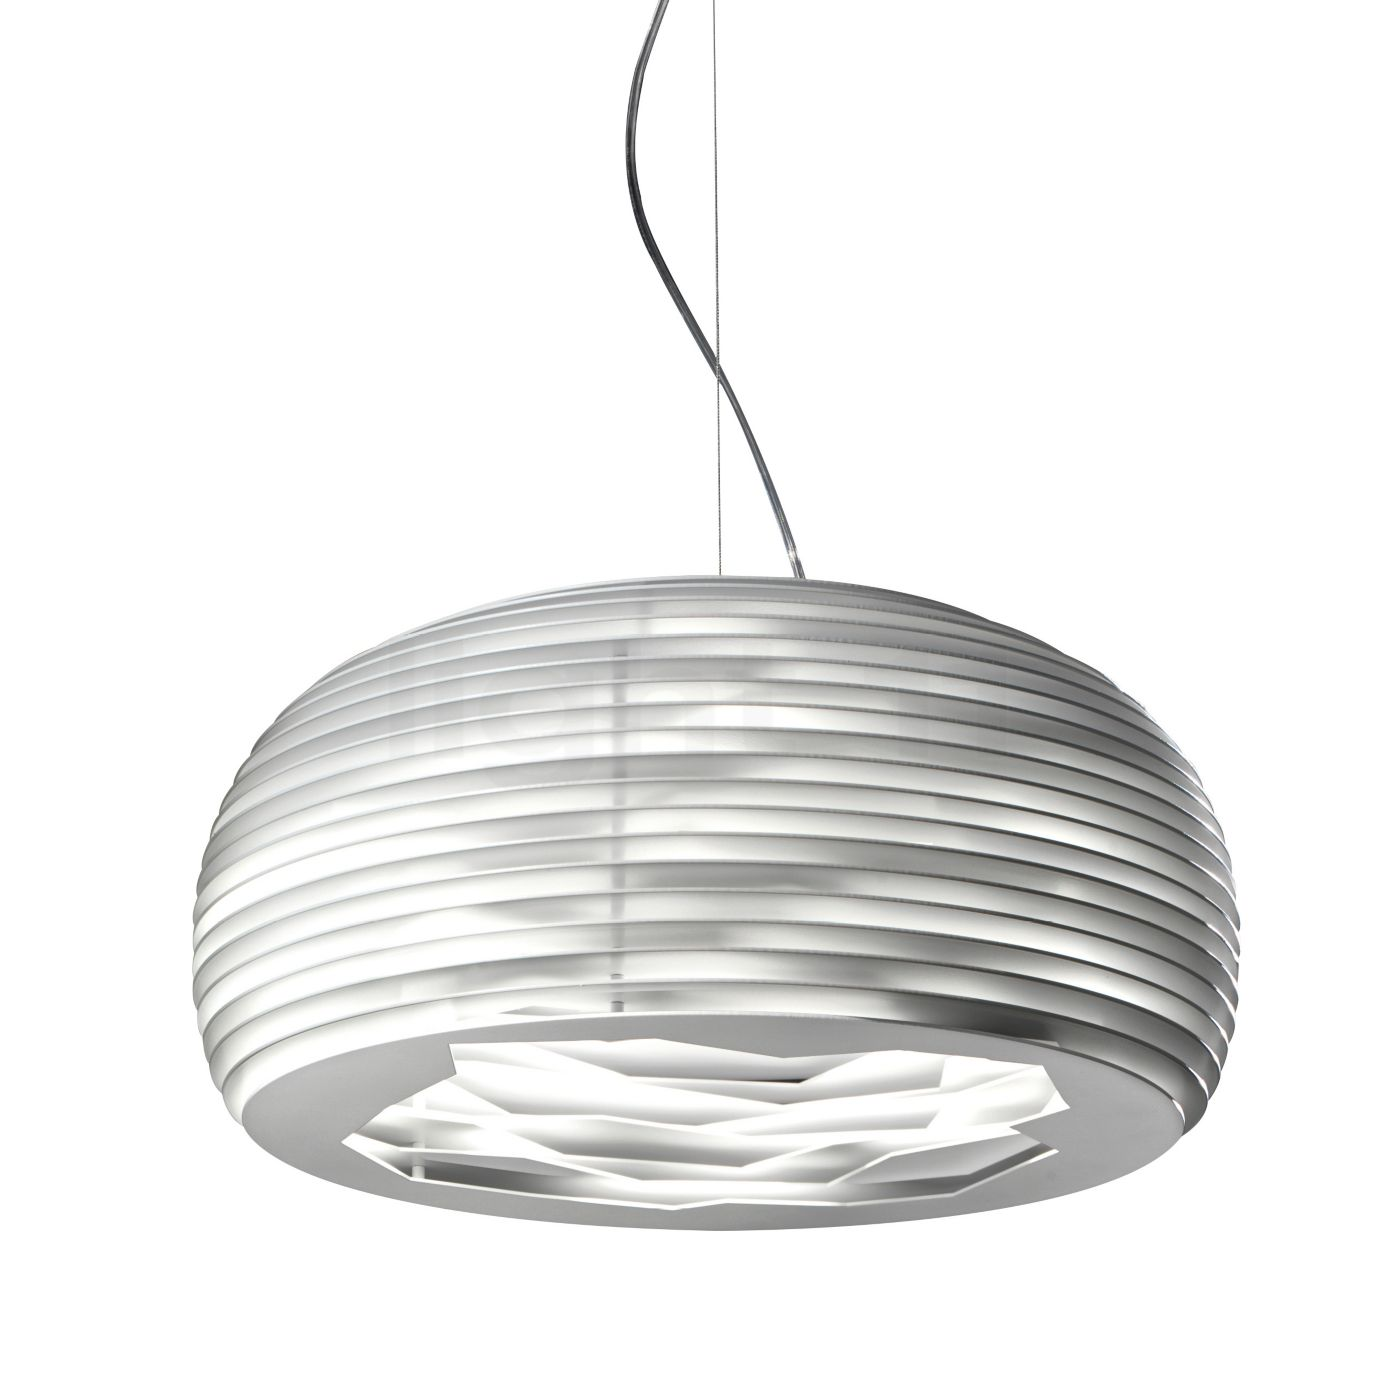 light warehouse lighting pendant compassion shade info canada galvanized template